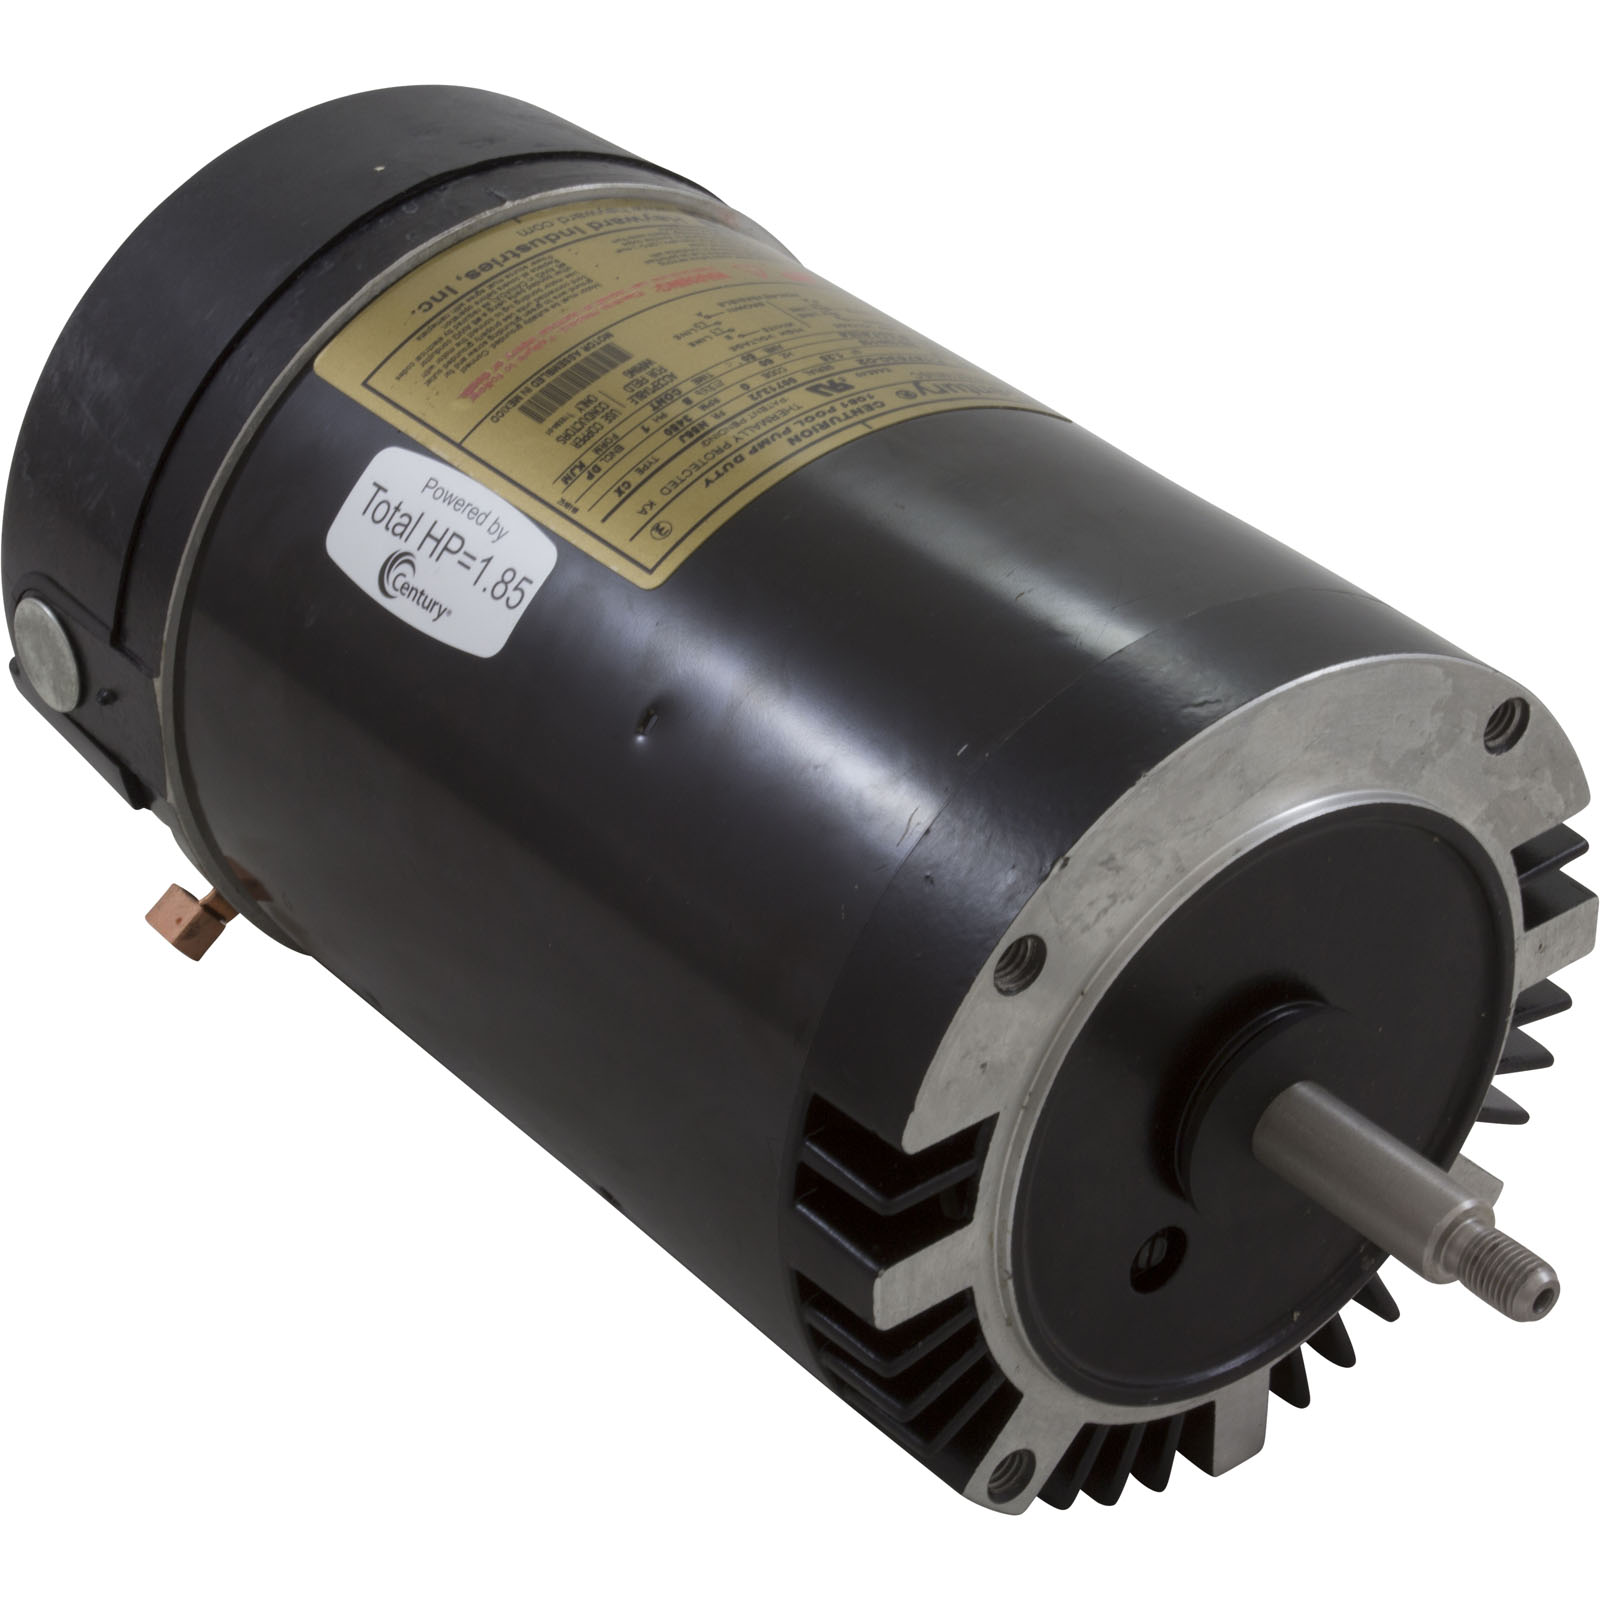 Motor hayward northstar sp4000x 1 spd max rated for Hayward northstar 1 5 hp motor